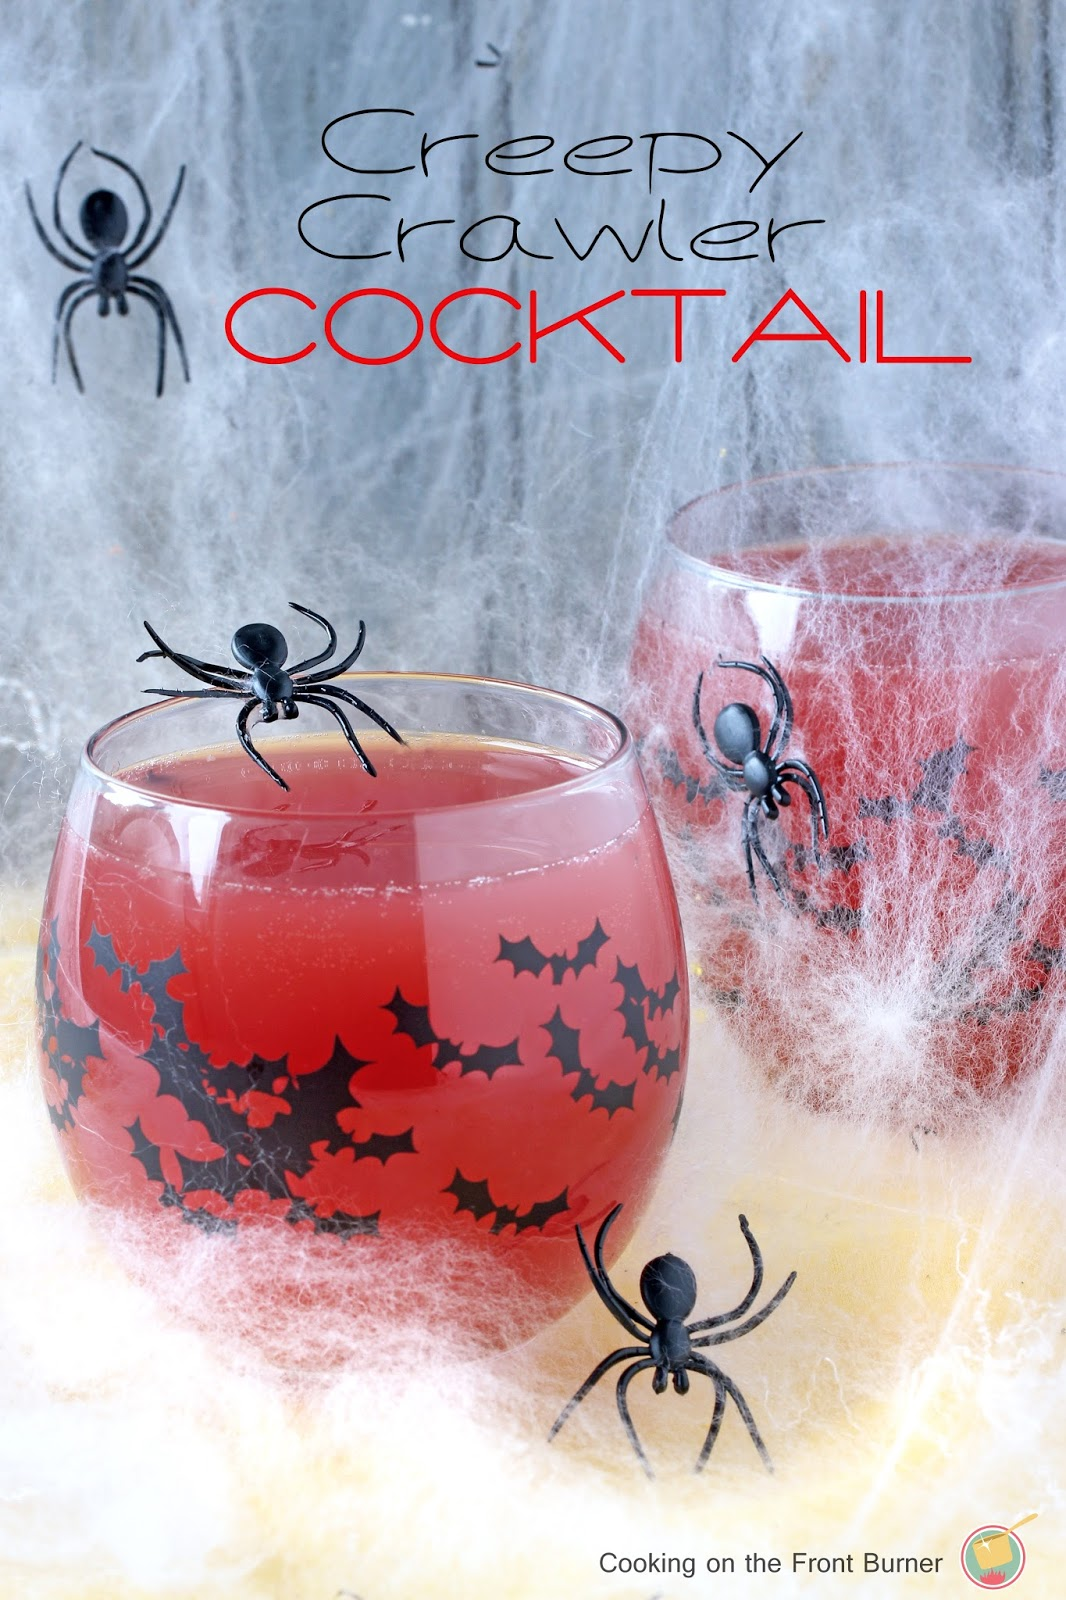 Creepy Crawler Cocktail from Cooking on the Front Burner featured at Saturday Night Fever